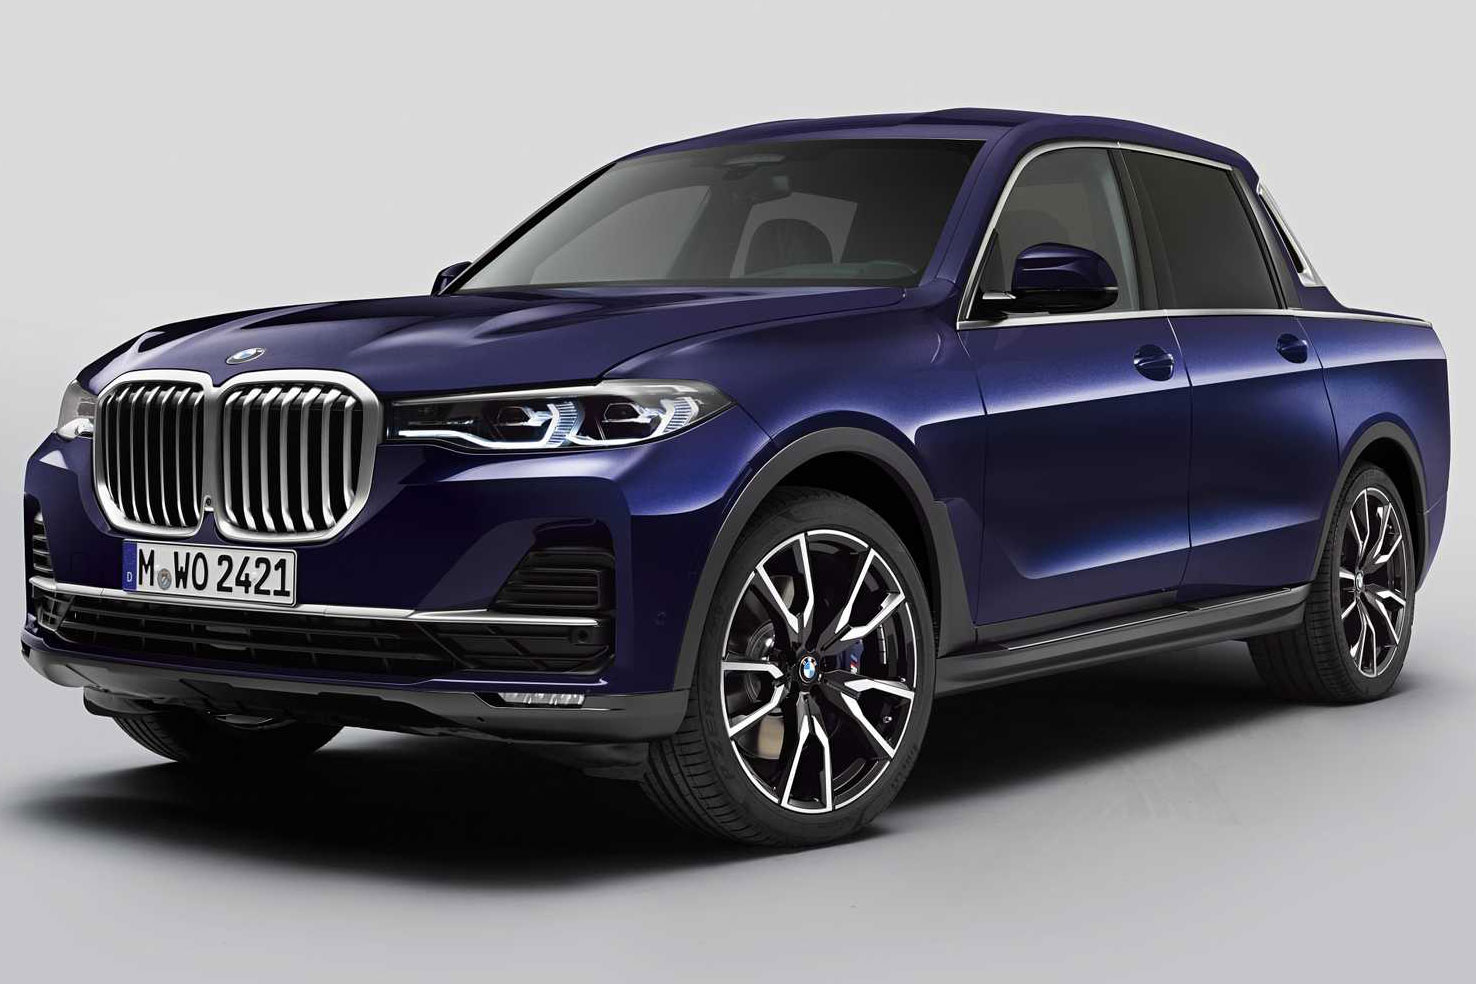 The Bmw X7 Pickup Truck Is Real And It Looks Like A Yacht Gearjunkie